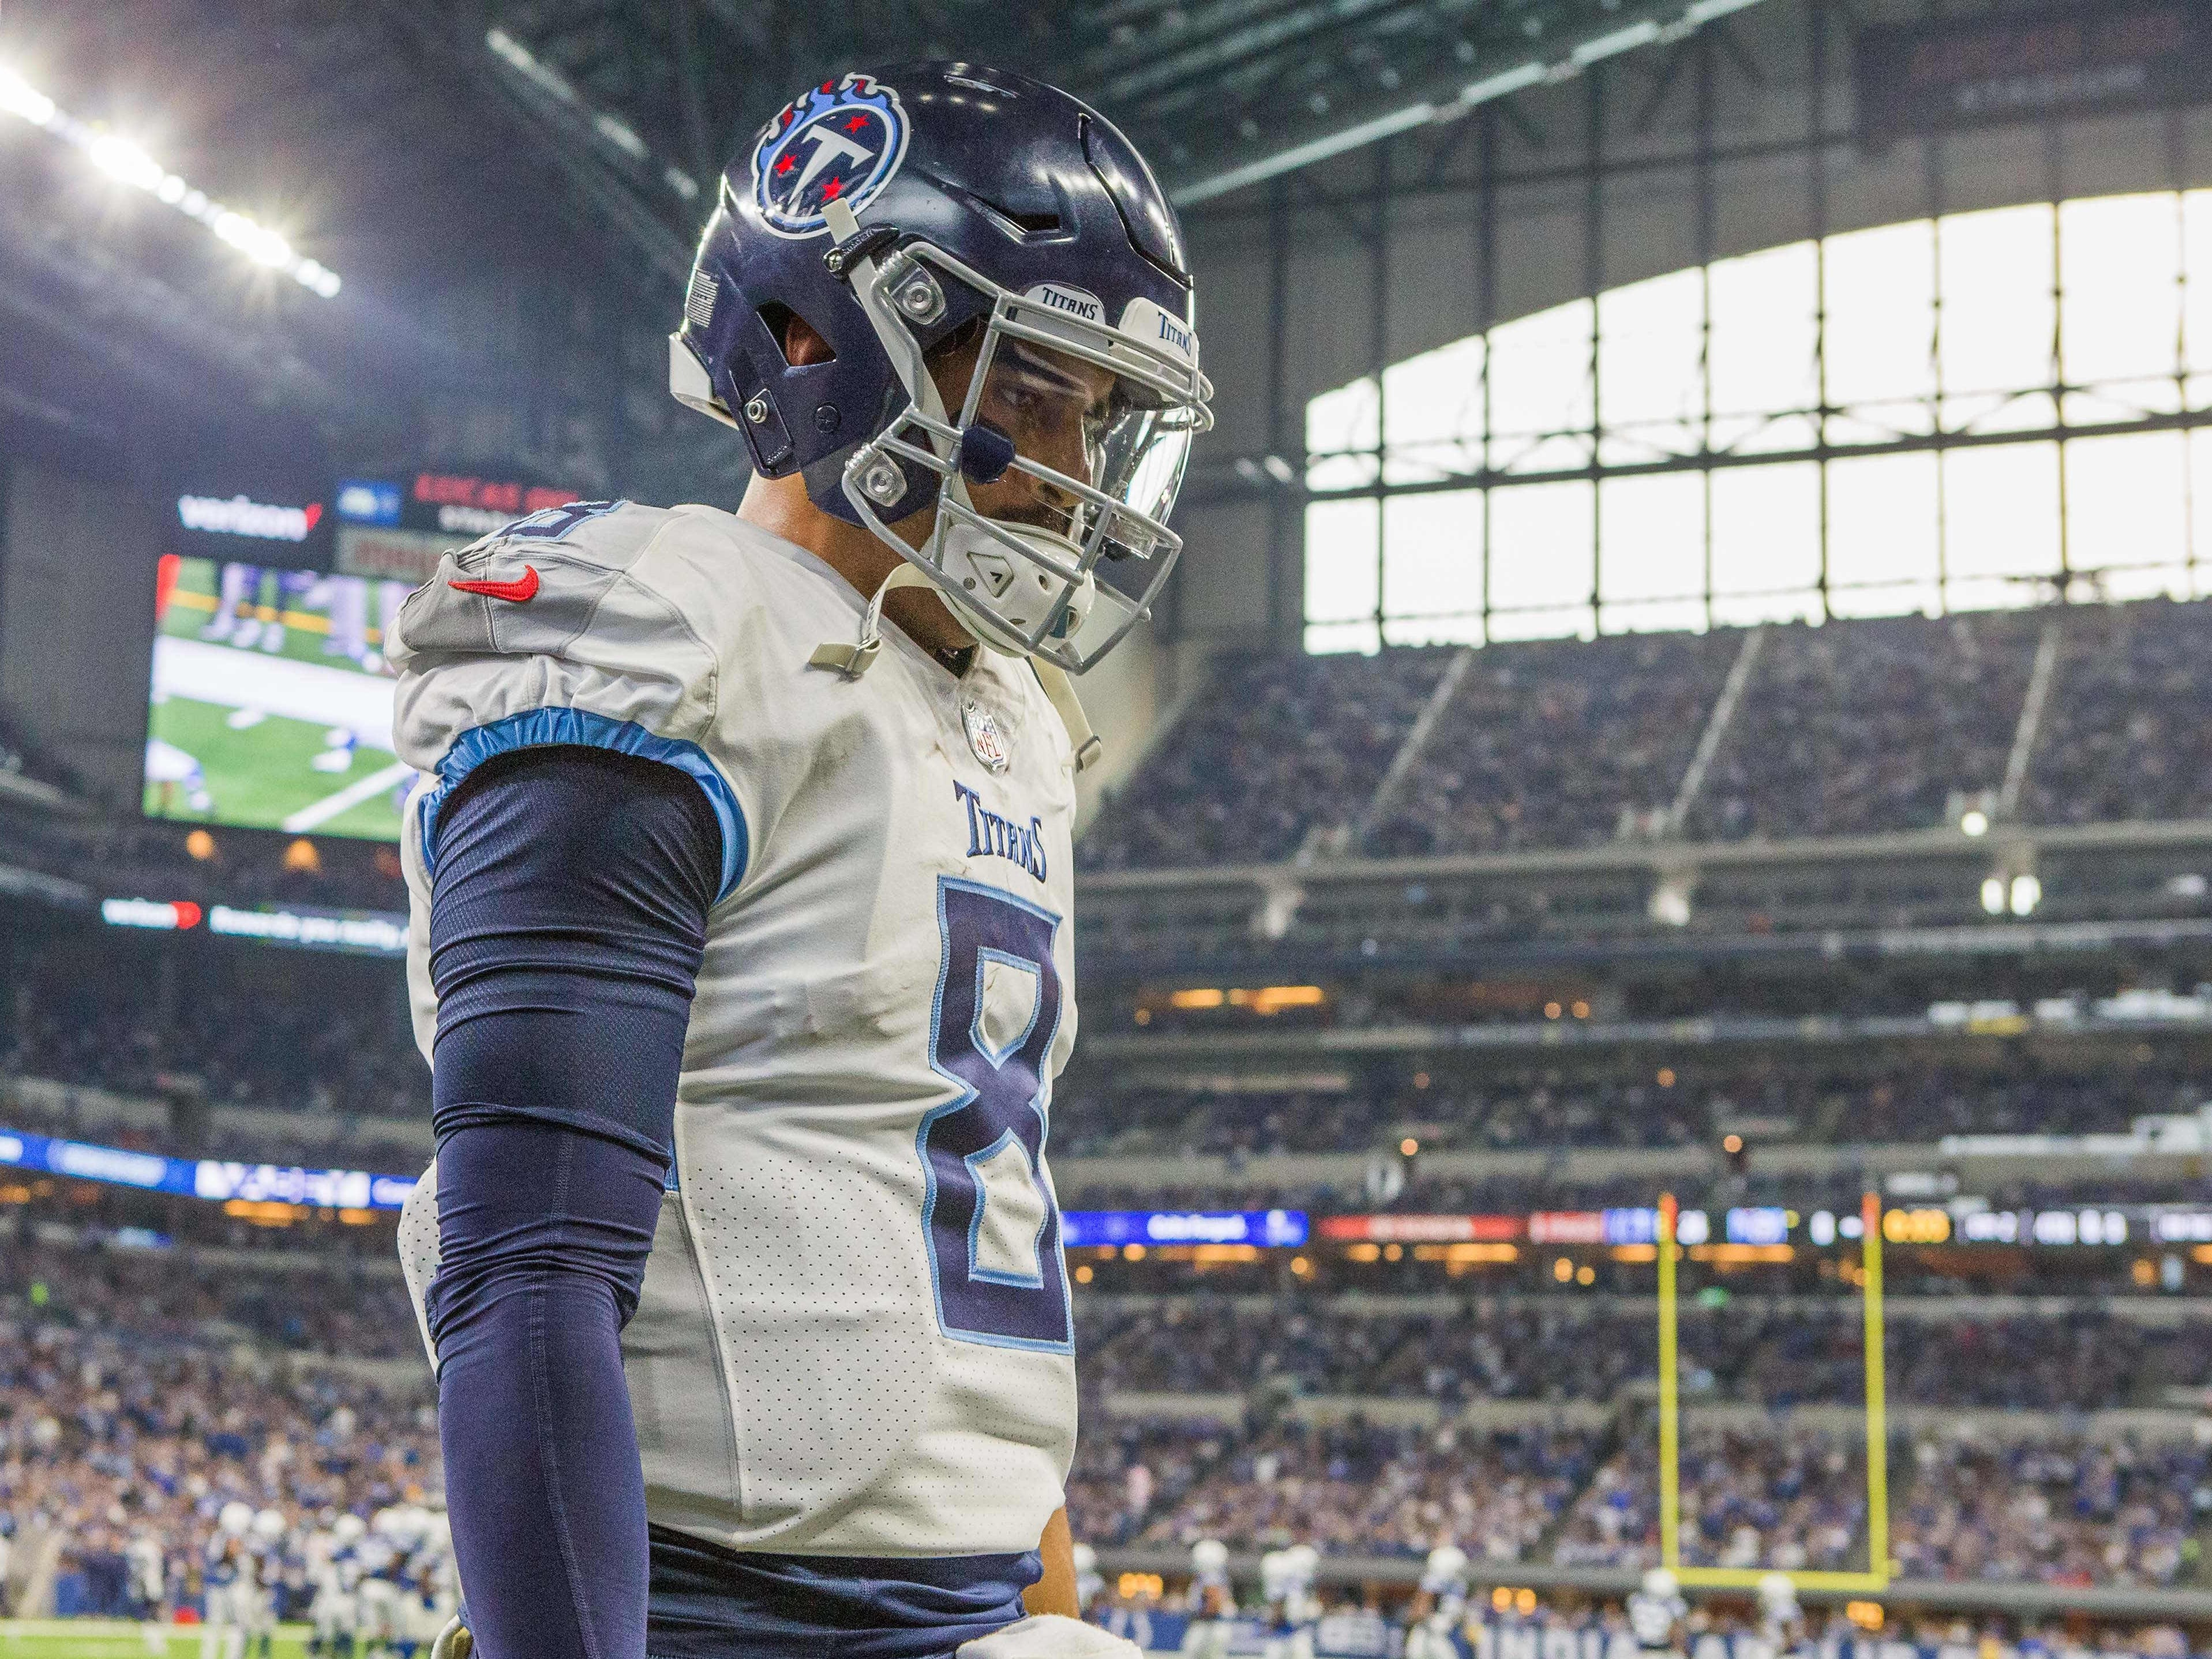 15. Titans (11): Entered weekend as NFL's No. 1 scoring defense and came out other side having allowed 38 points – 11 more than any other game in 2018.